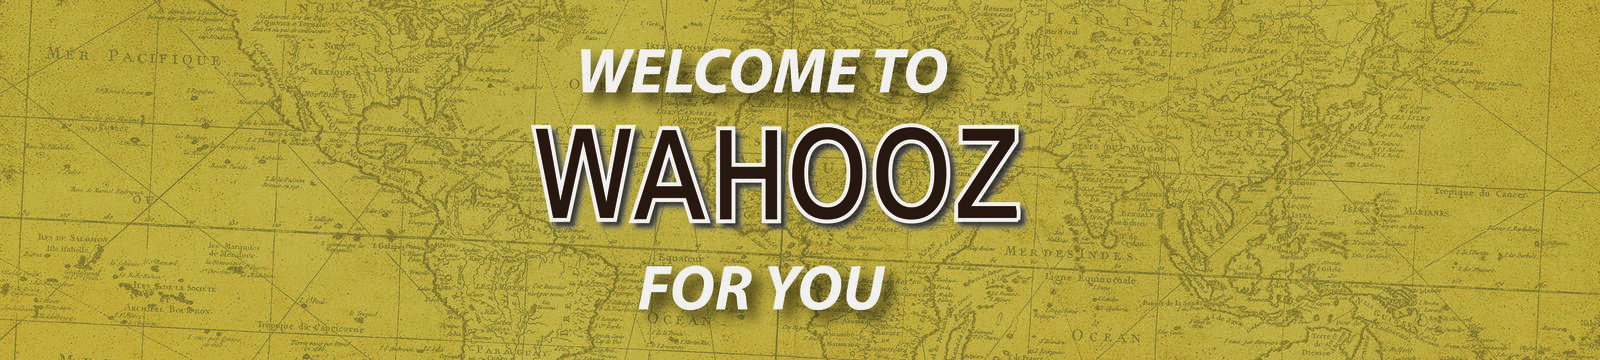 Wahooz For You